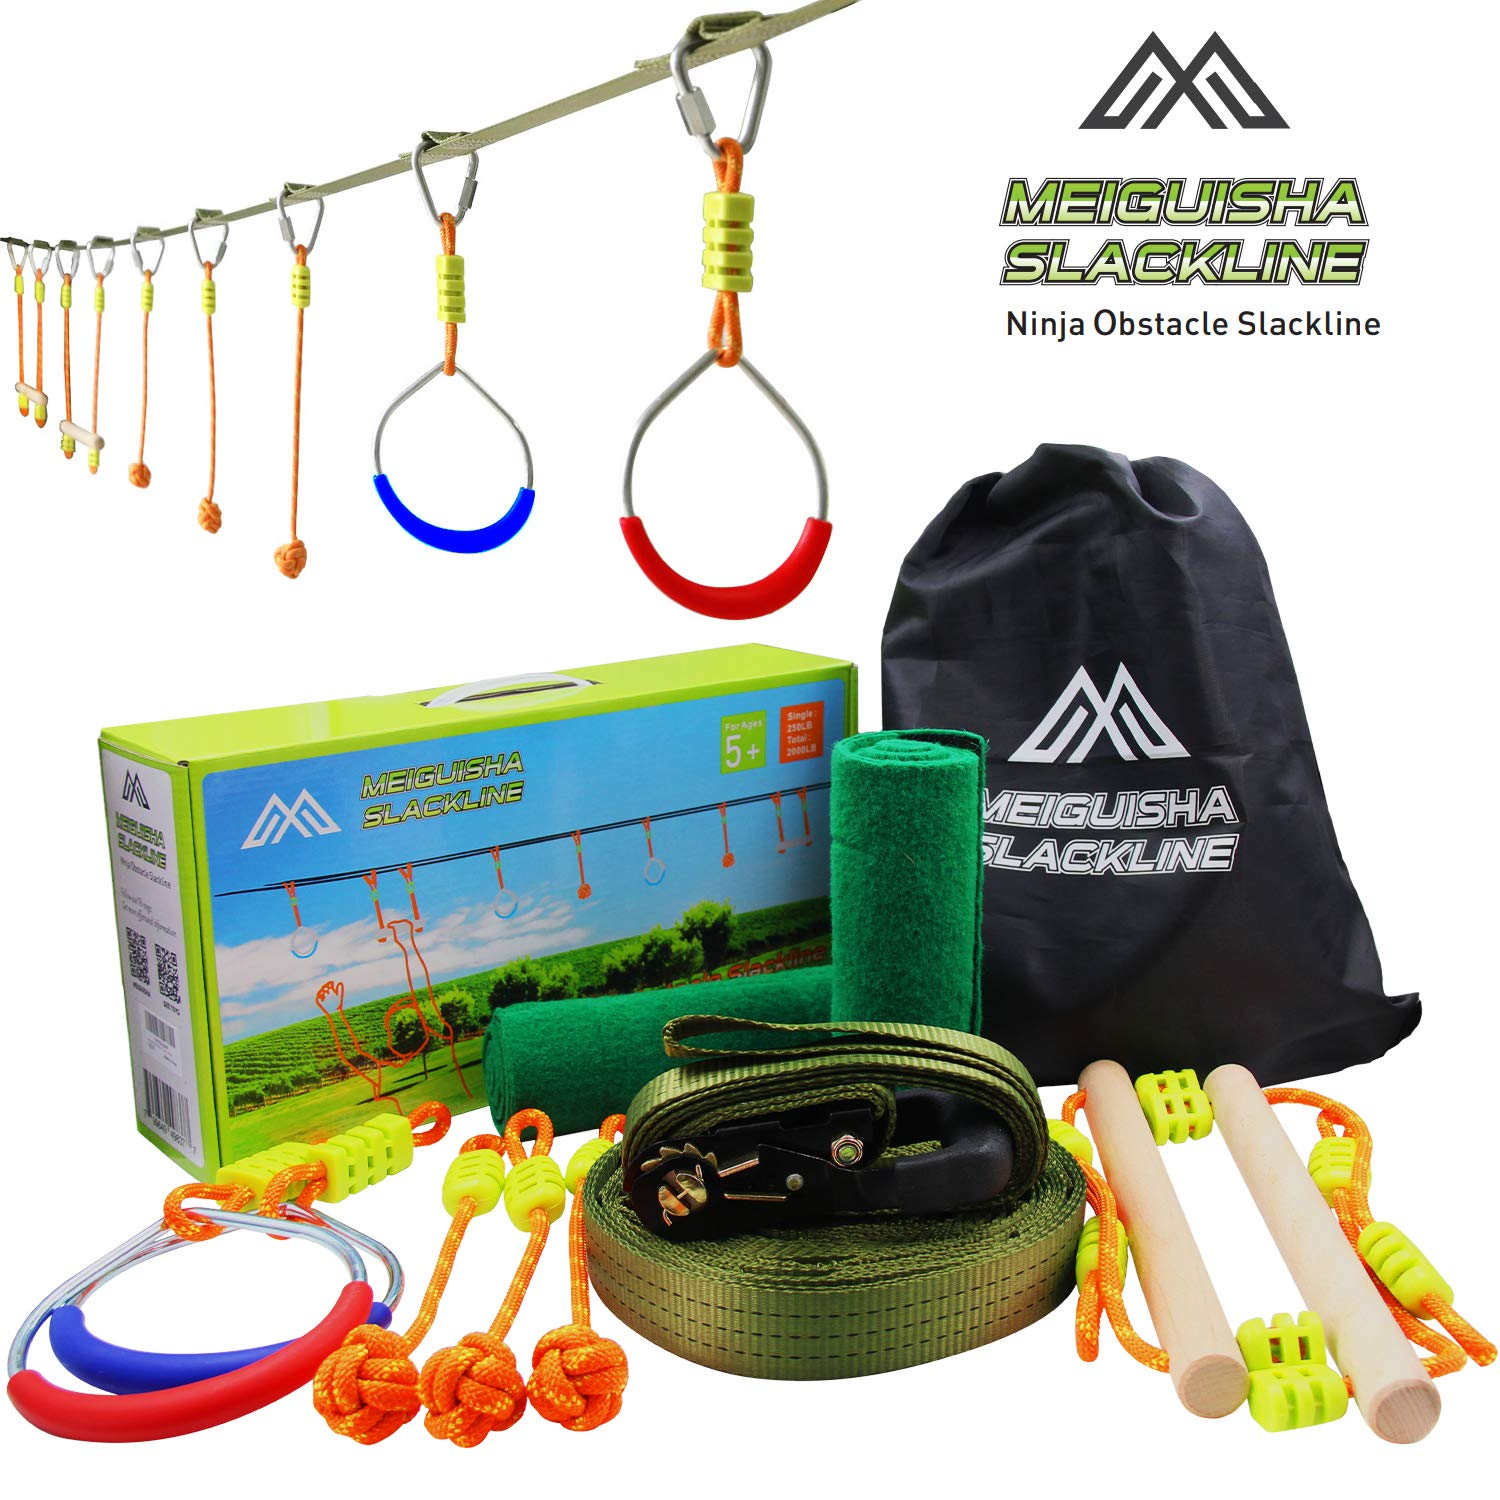 MeiGuiSha Ninja Obstacle Course – Total 2000LB Capacity Slackline with 2 Gym Rings, 2 Tree Protectors, 3 Monkey Fists, 2 Monkey Bars and Carry Bag